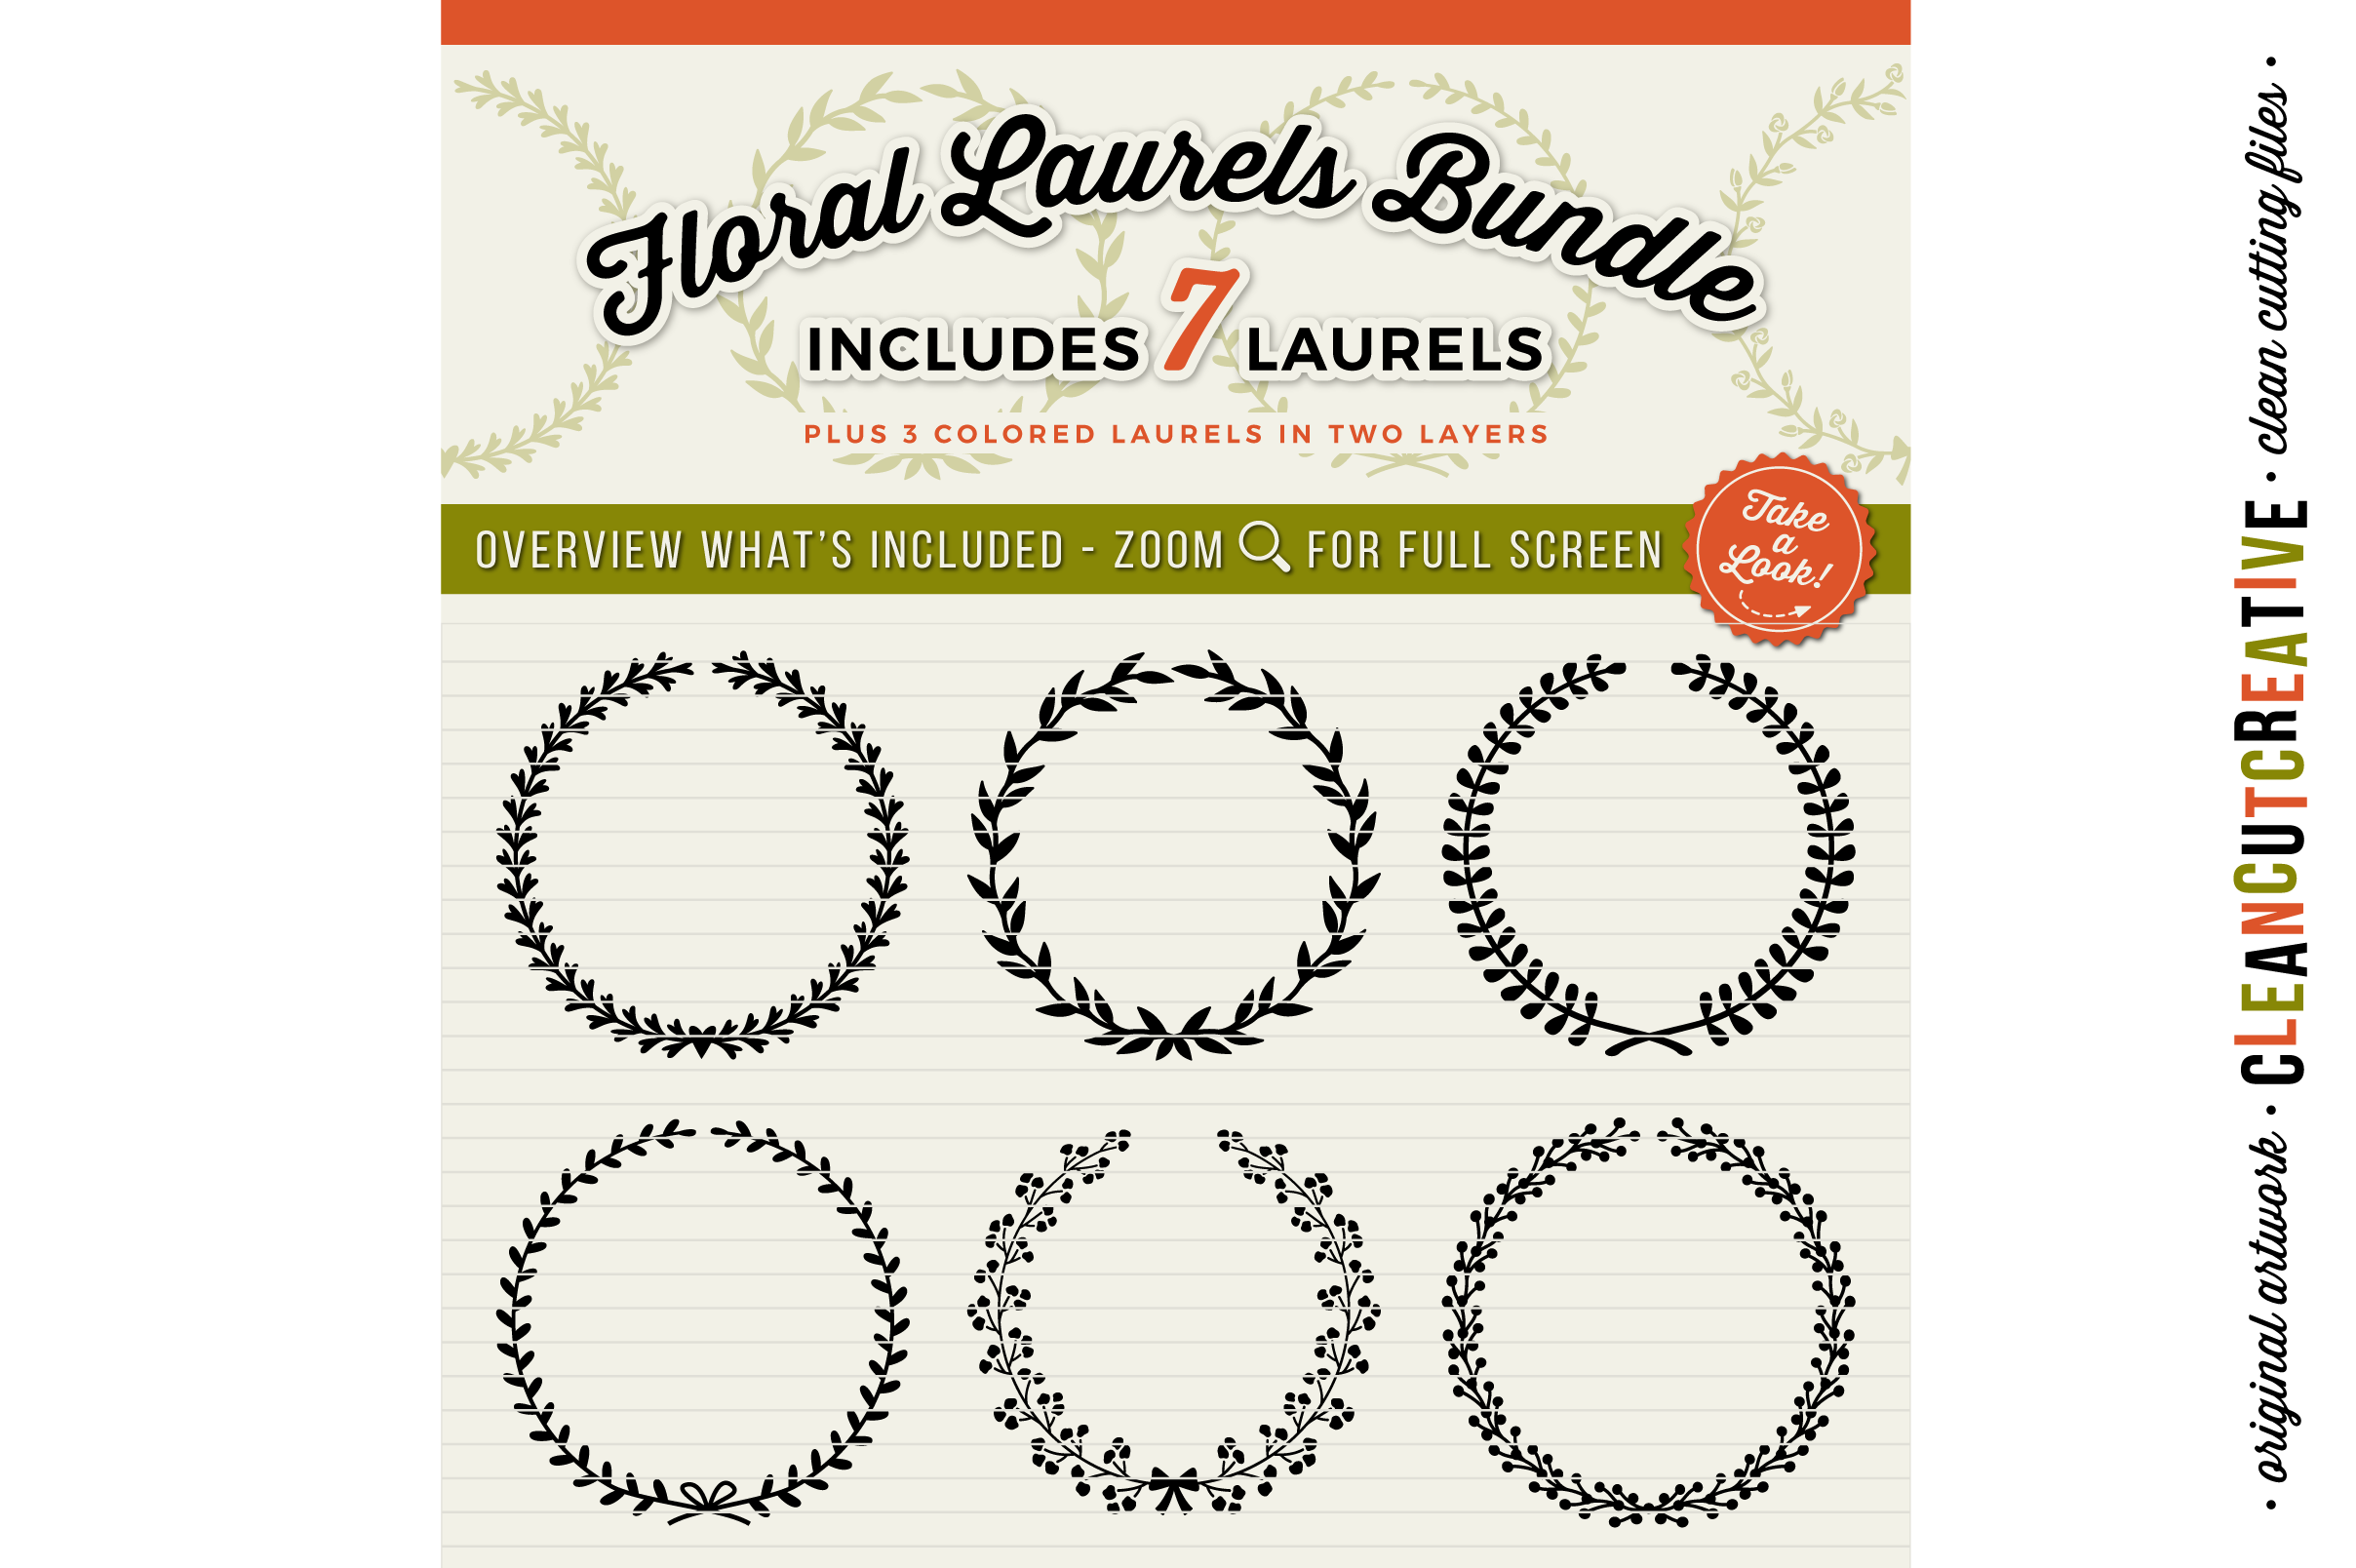 7 svg FLORAL LAURELS floral leaf circleframes - SVG DXF EPS PNG - for Cricut and Silhouette Cameo - clean cutting digital files example image 2